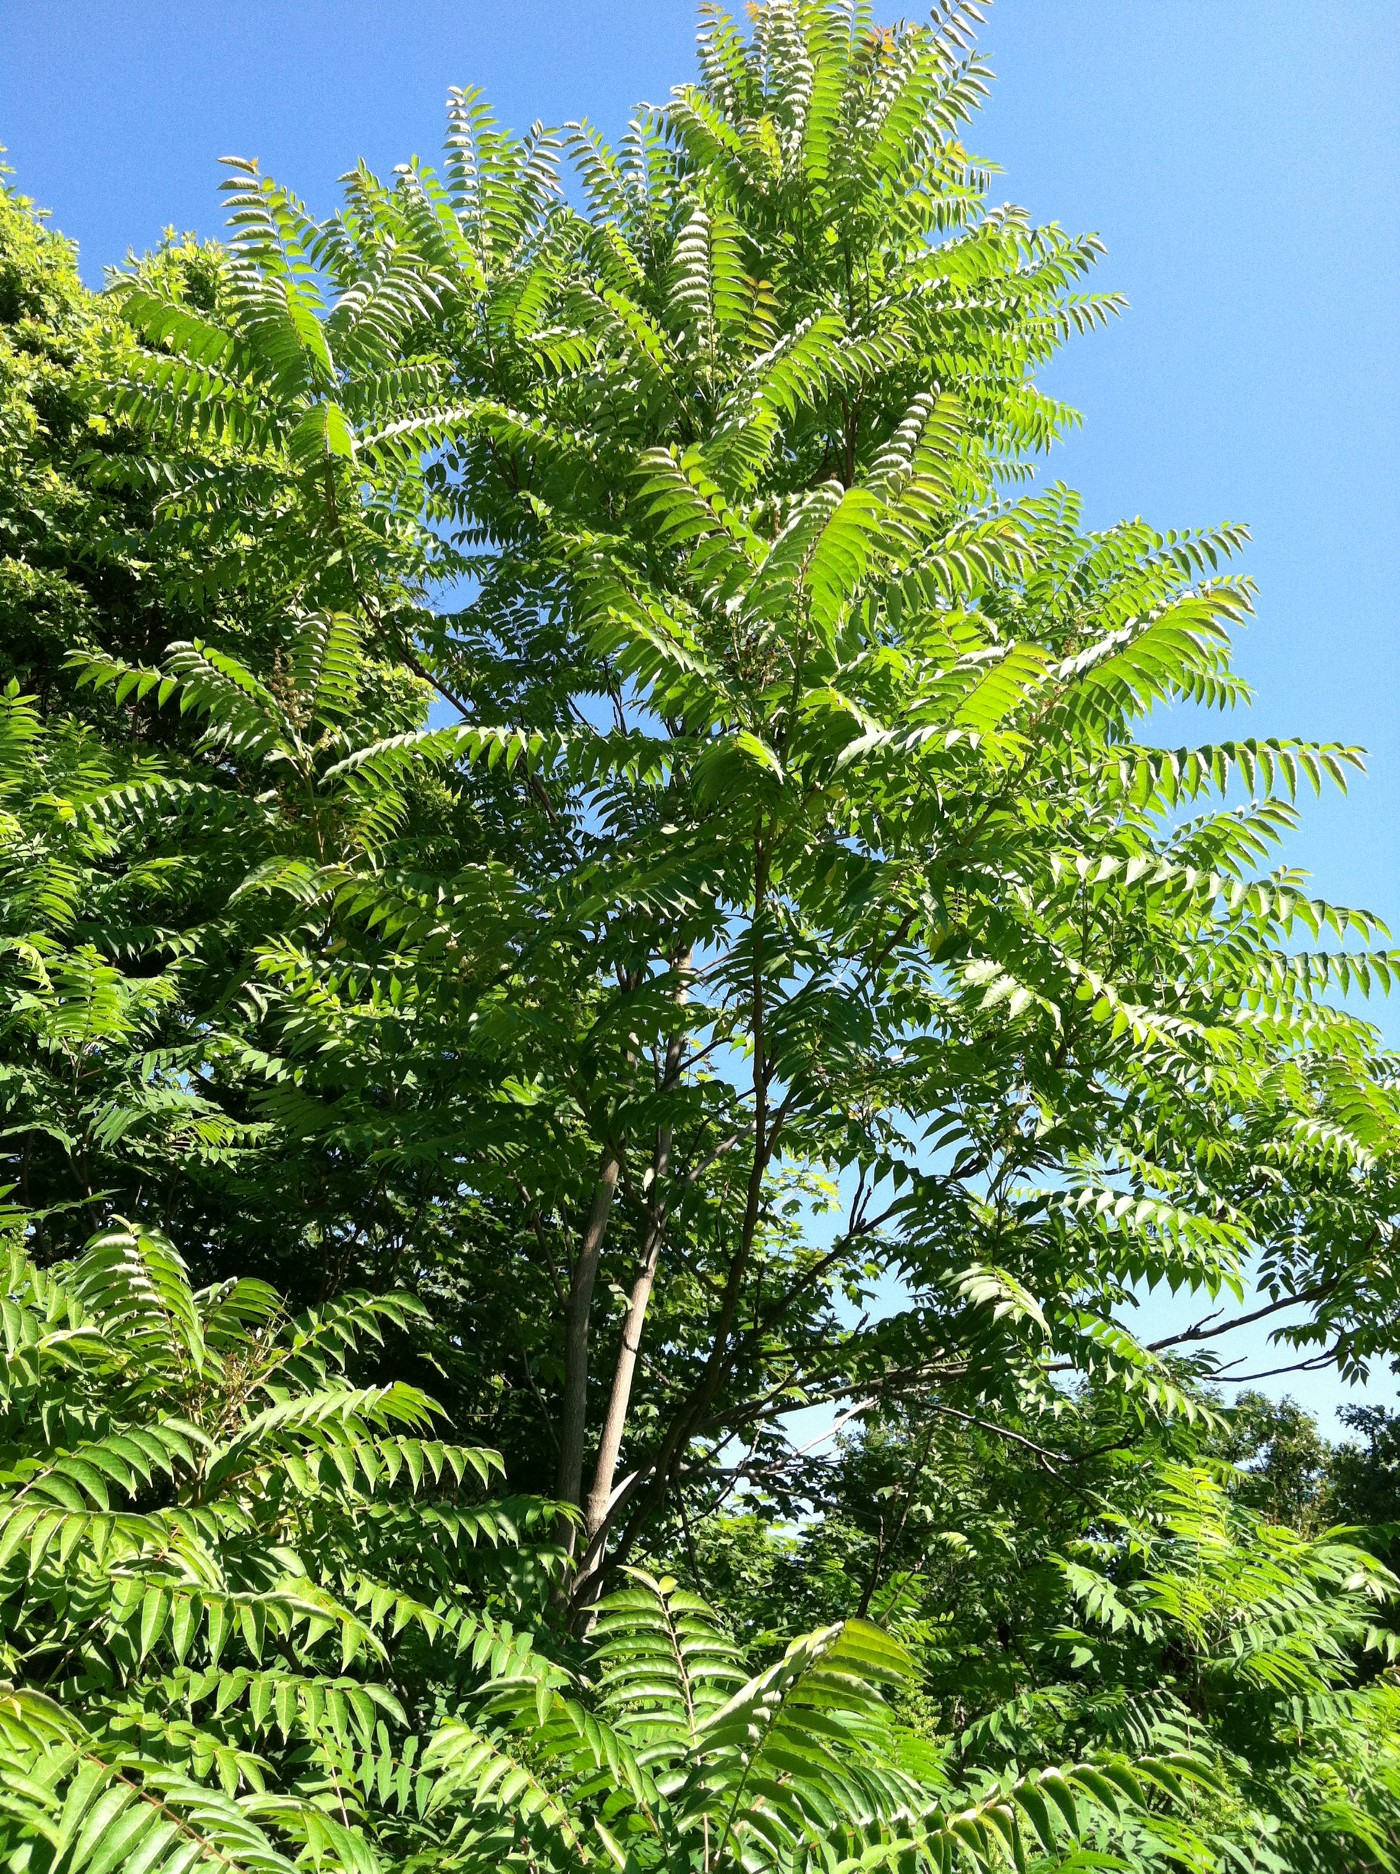 a tree with leafy green branches stretches toward a blue sky